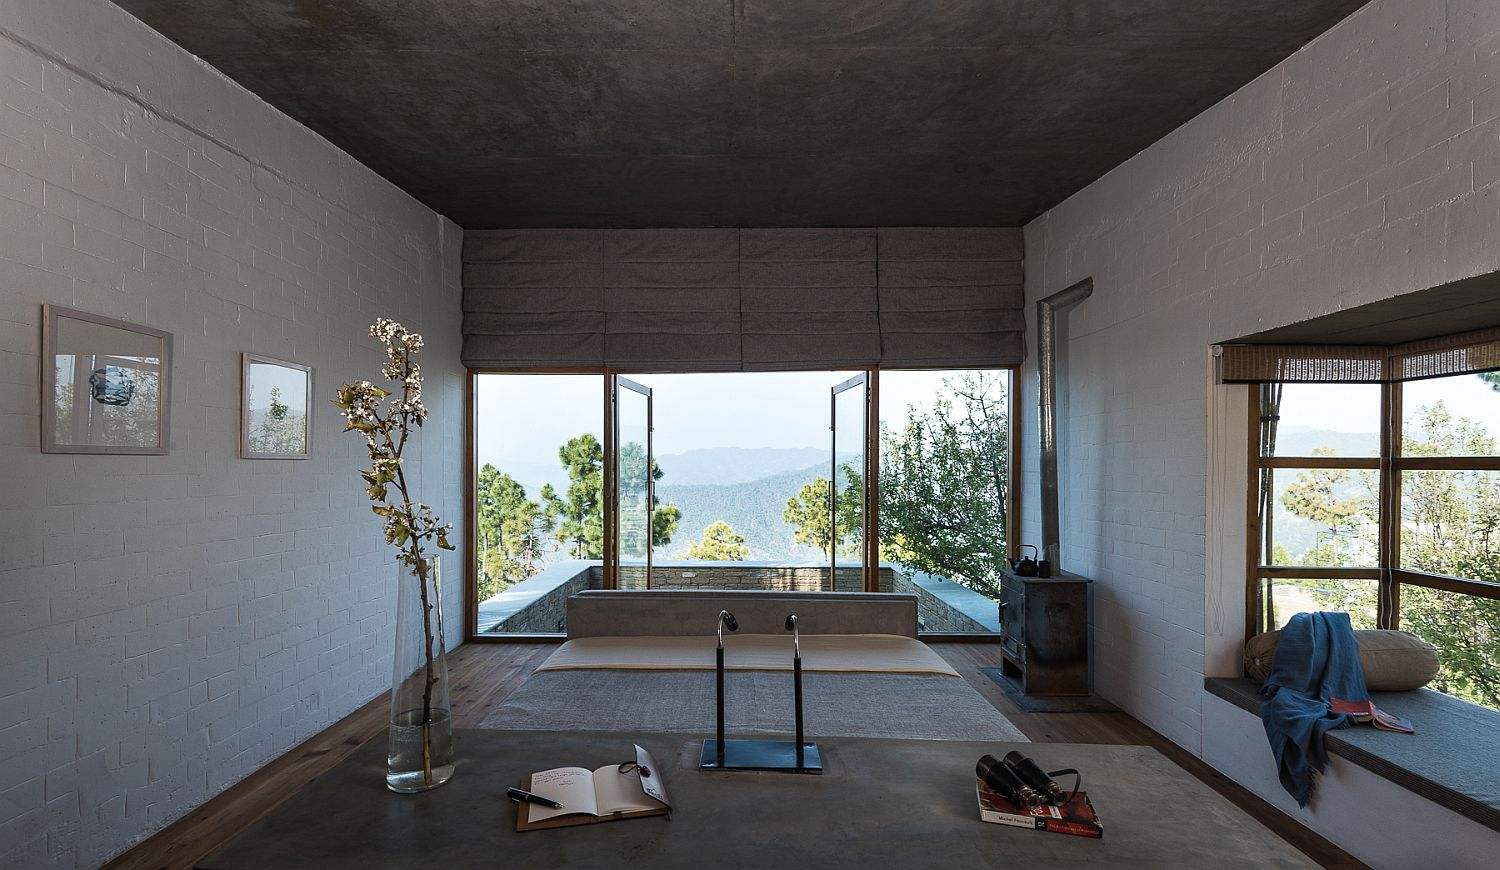 Bedroom with private balcony and a stunning view of the Himalayas